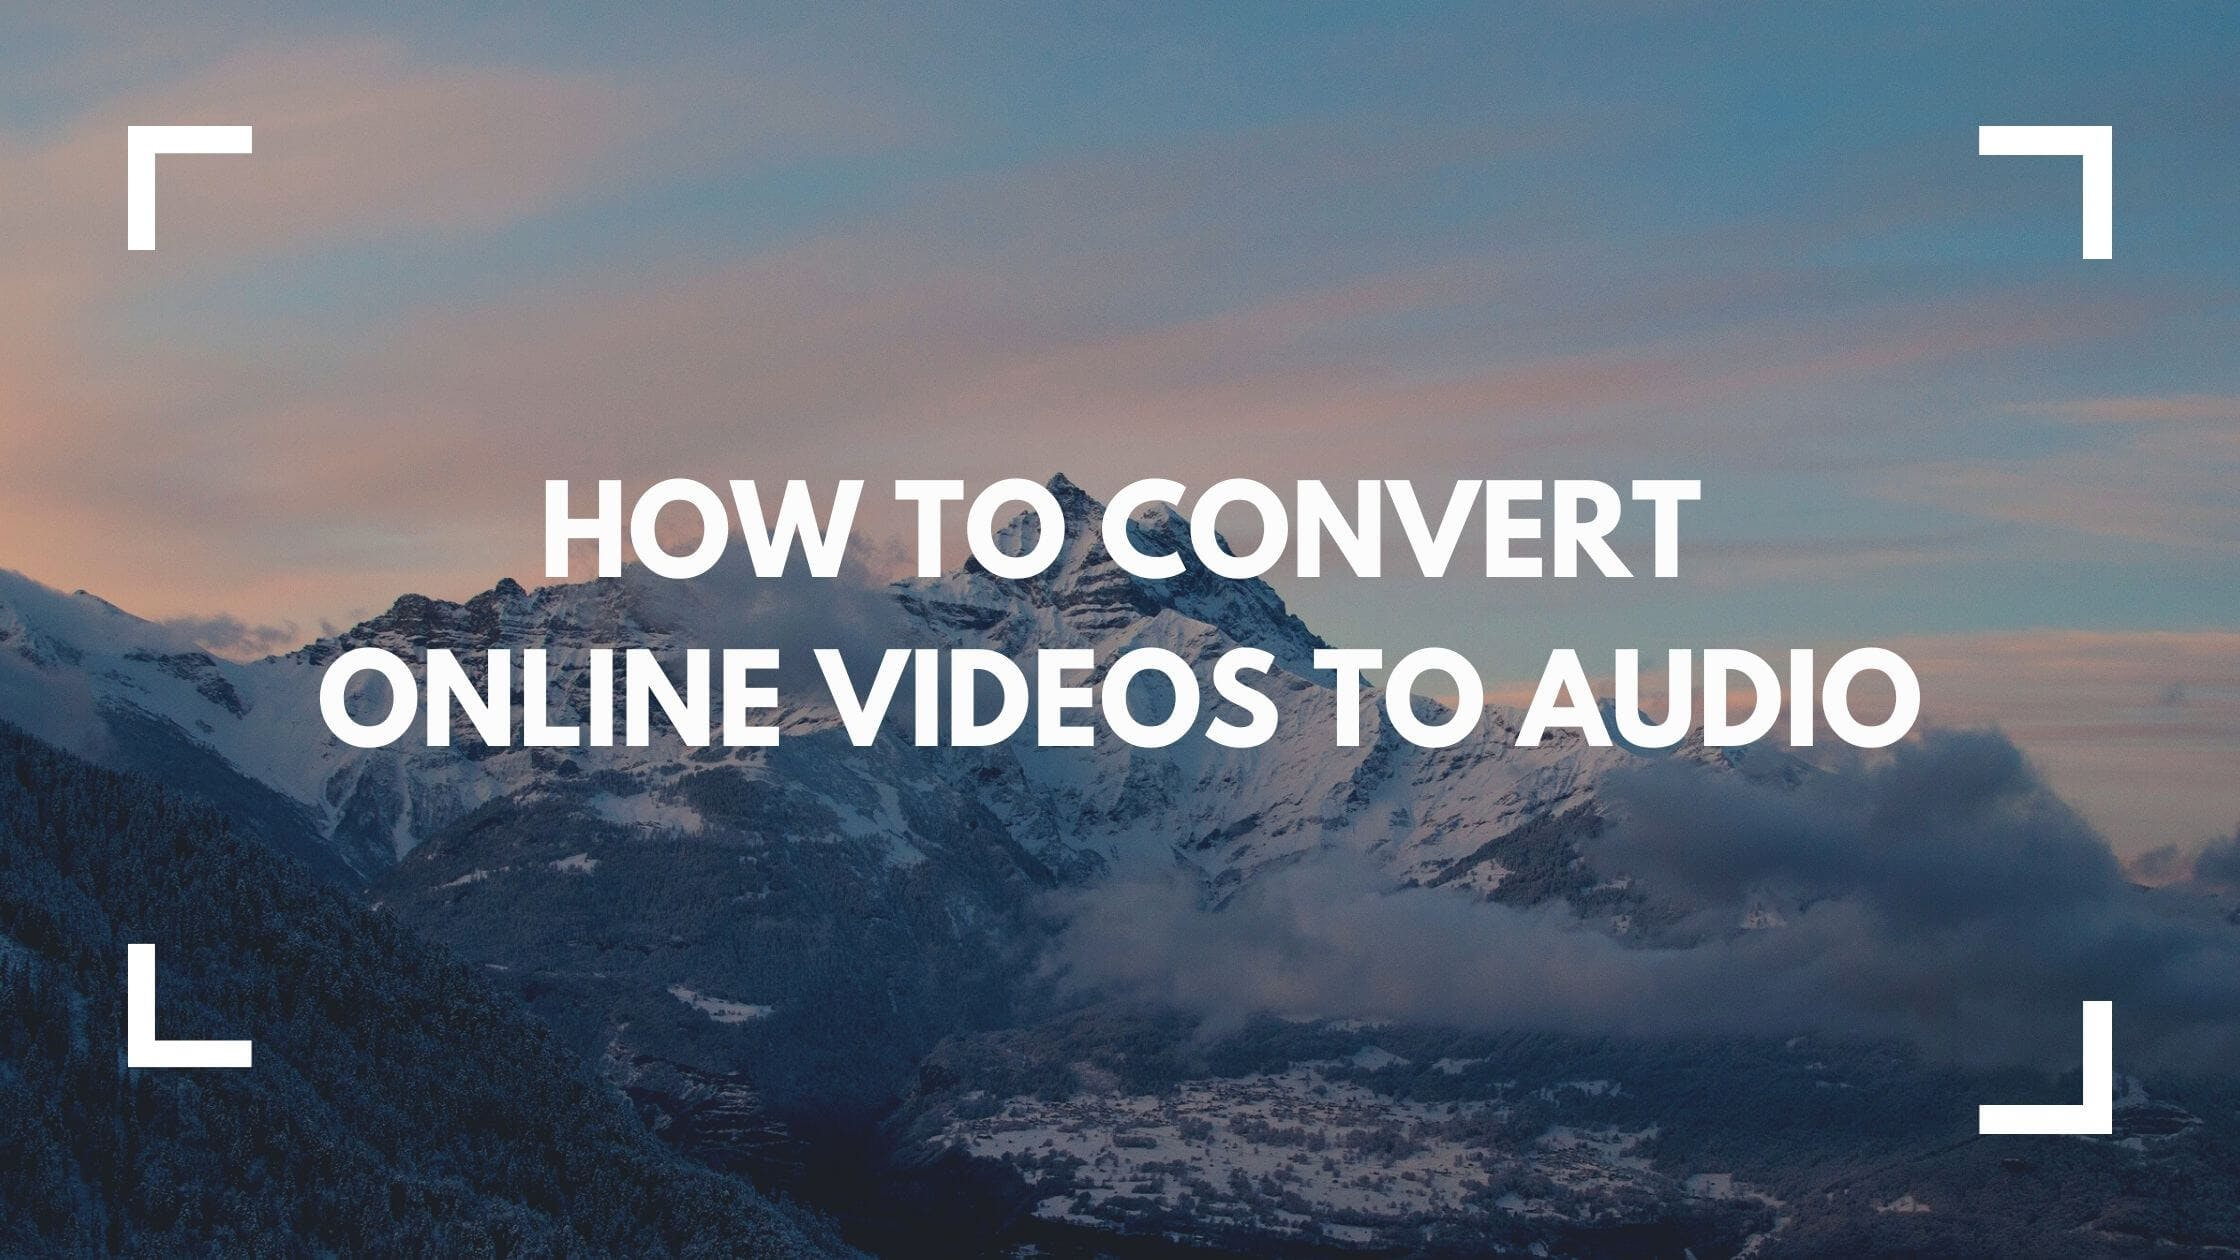 How to Convert Online Videos to Audio